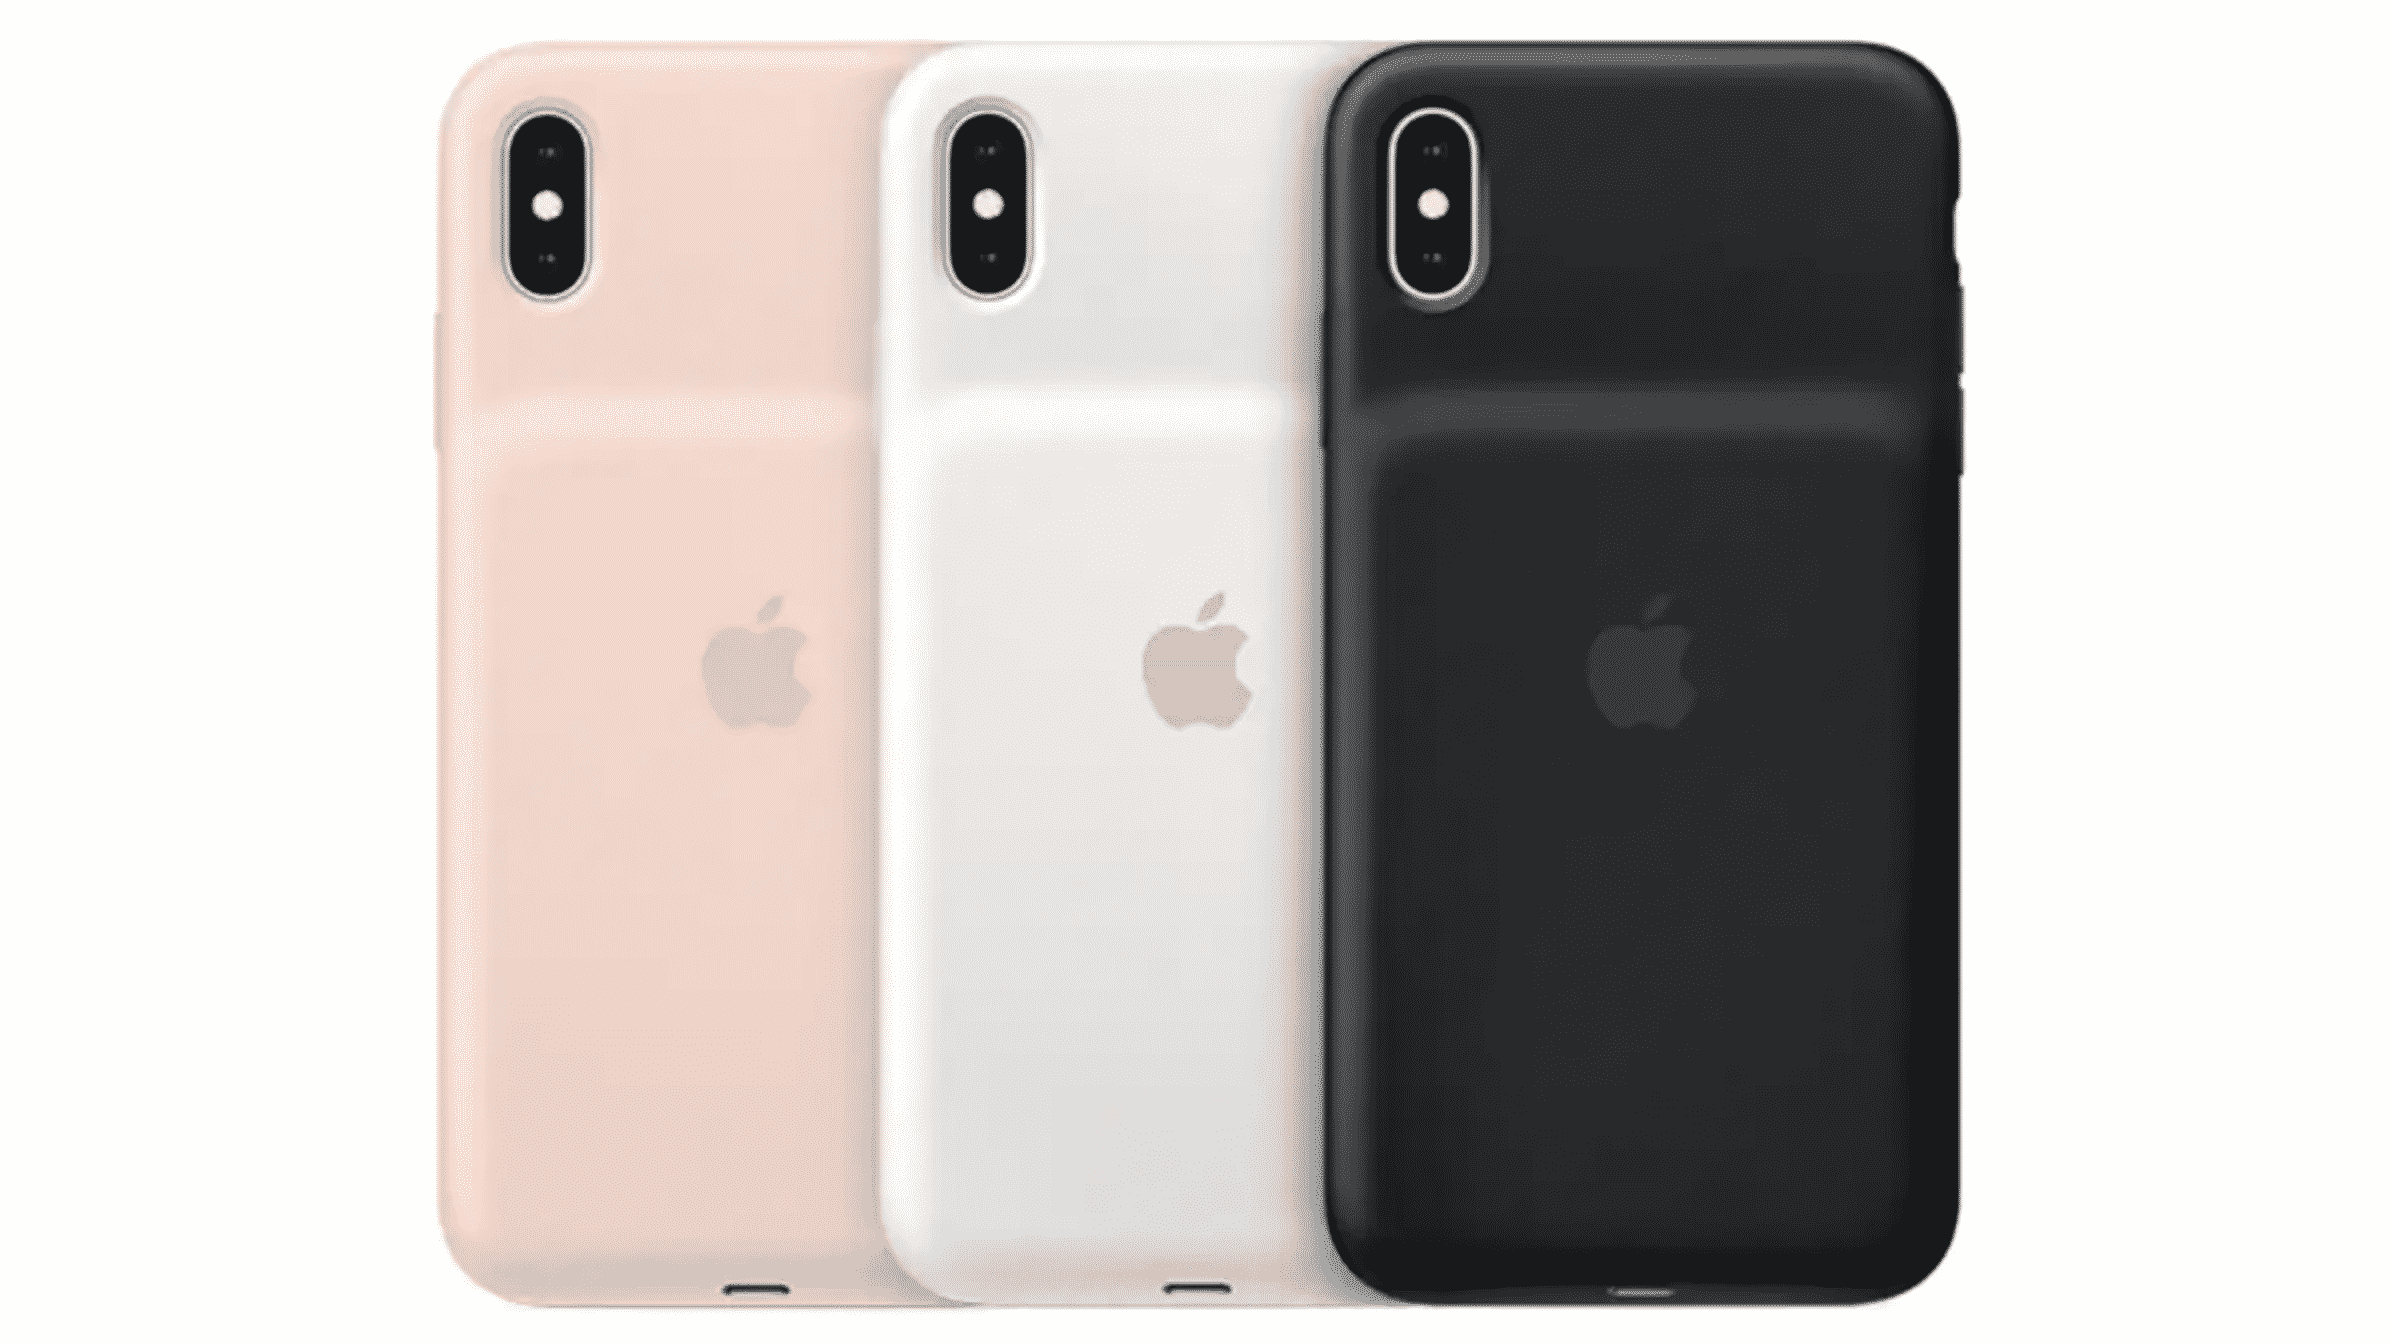 Apple Replacement Program for iPhone XR, XS Max and XS Battery Cases Launched